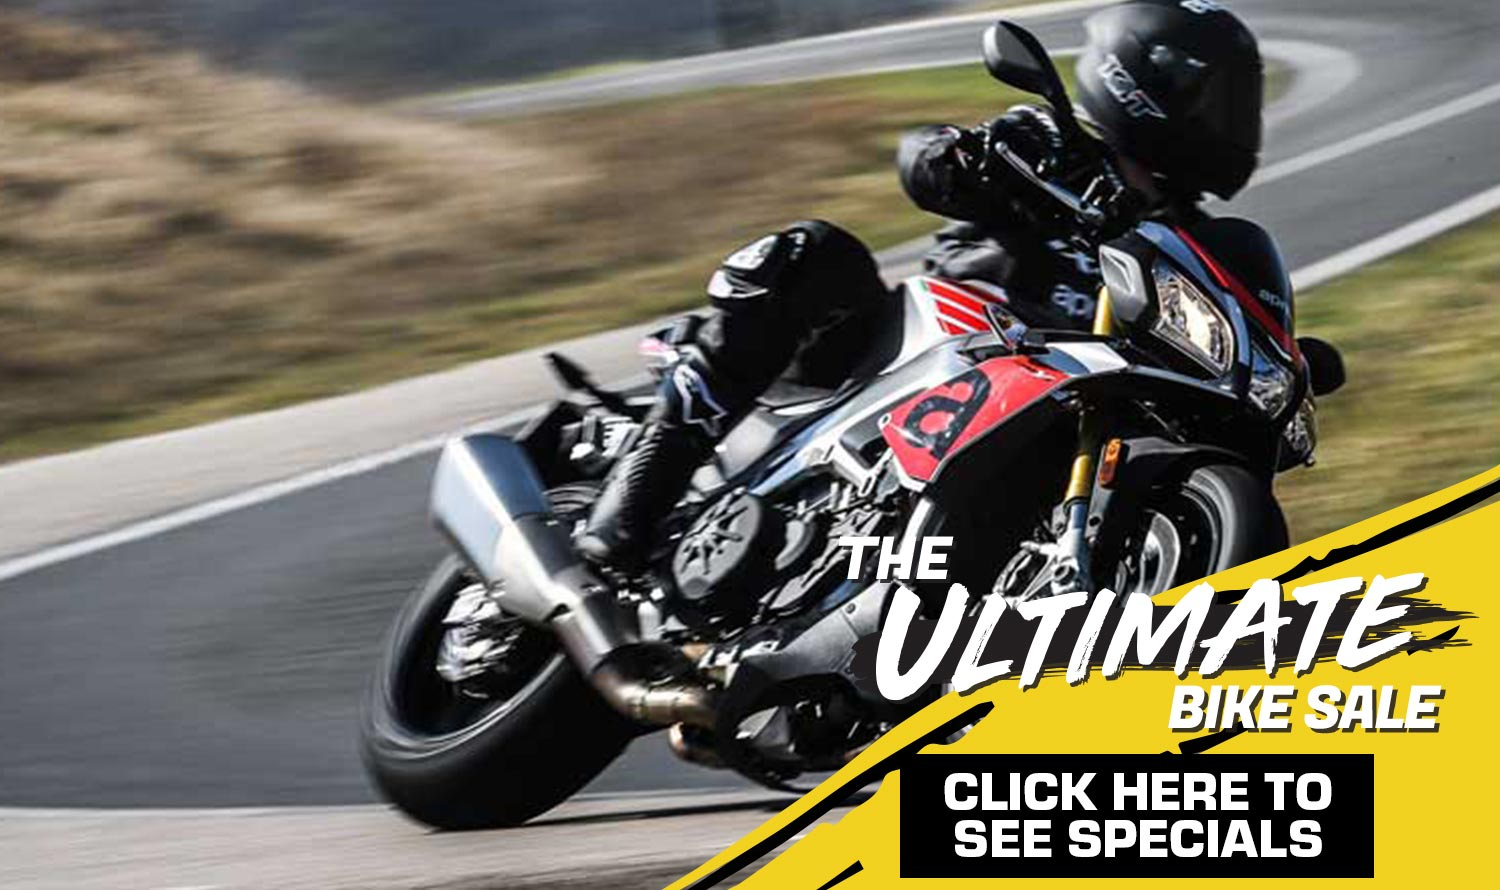 Ultimate-HPB-Aprilia-Nov18-SM